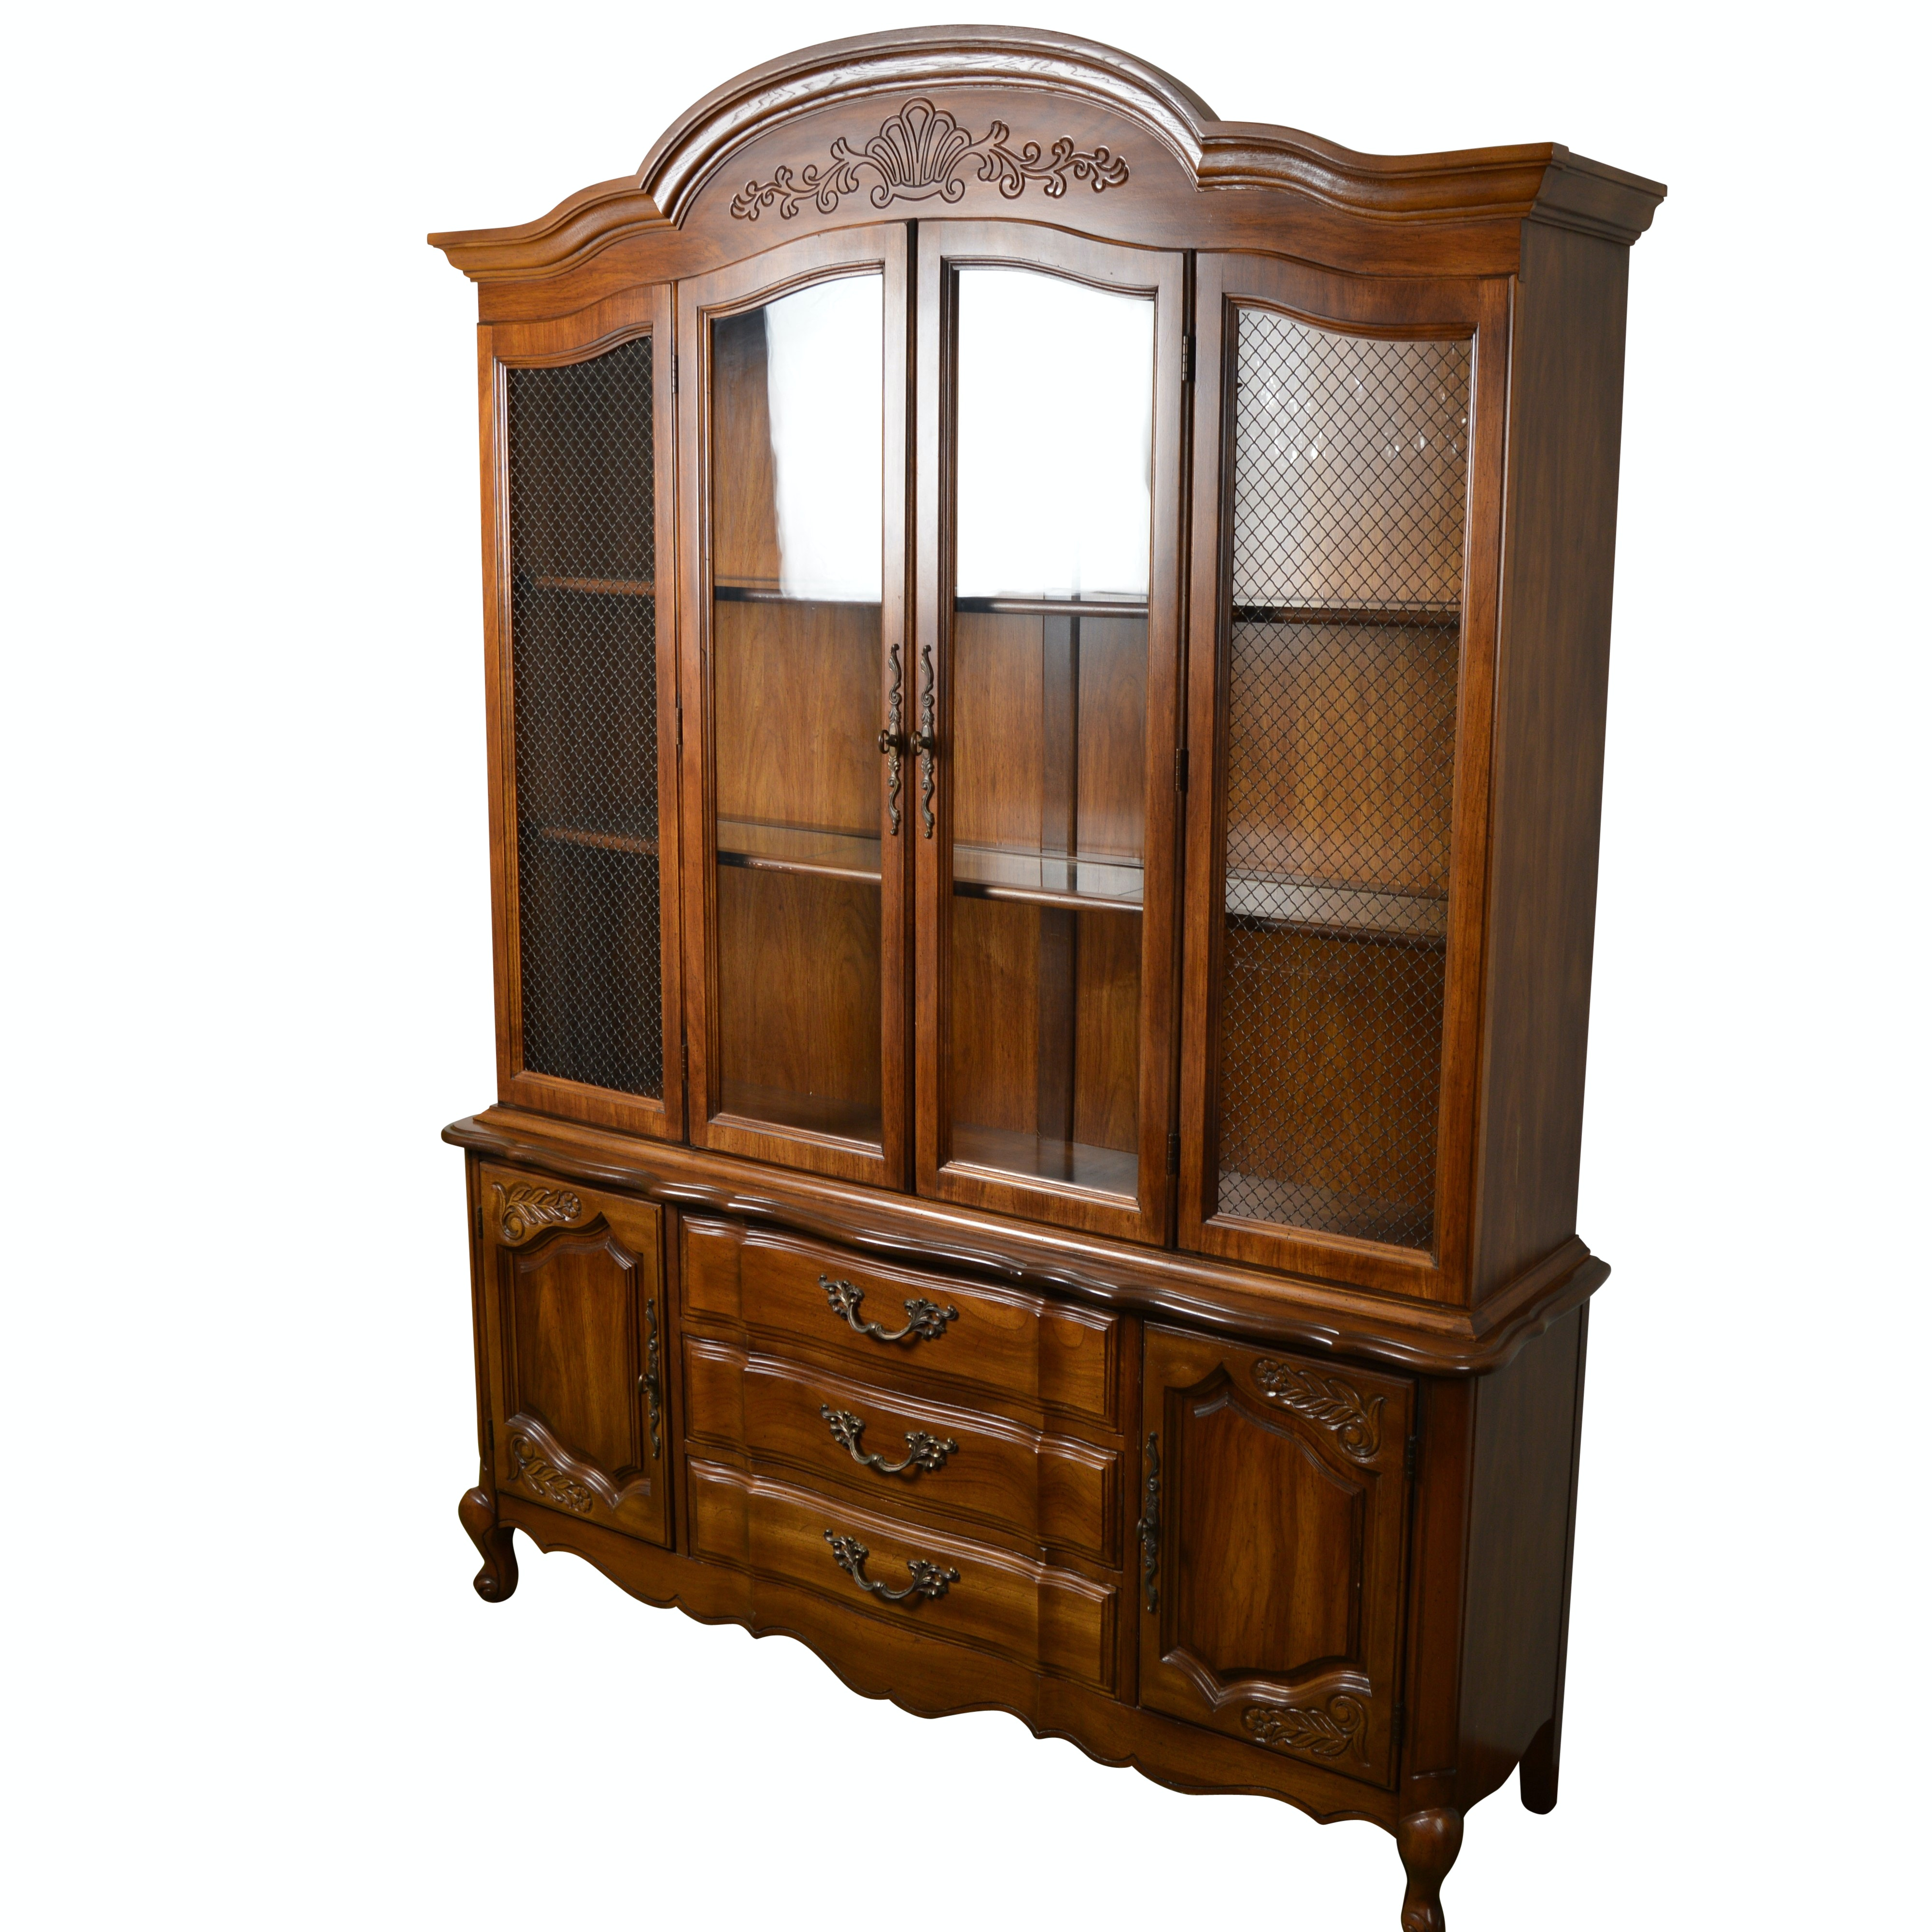 French Country Style China Cabinet by Bernhardt